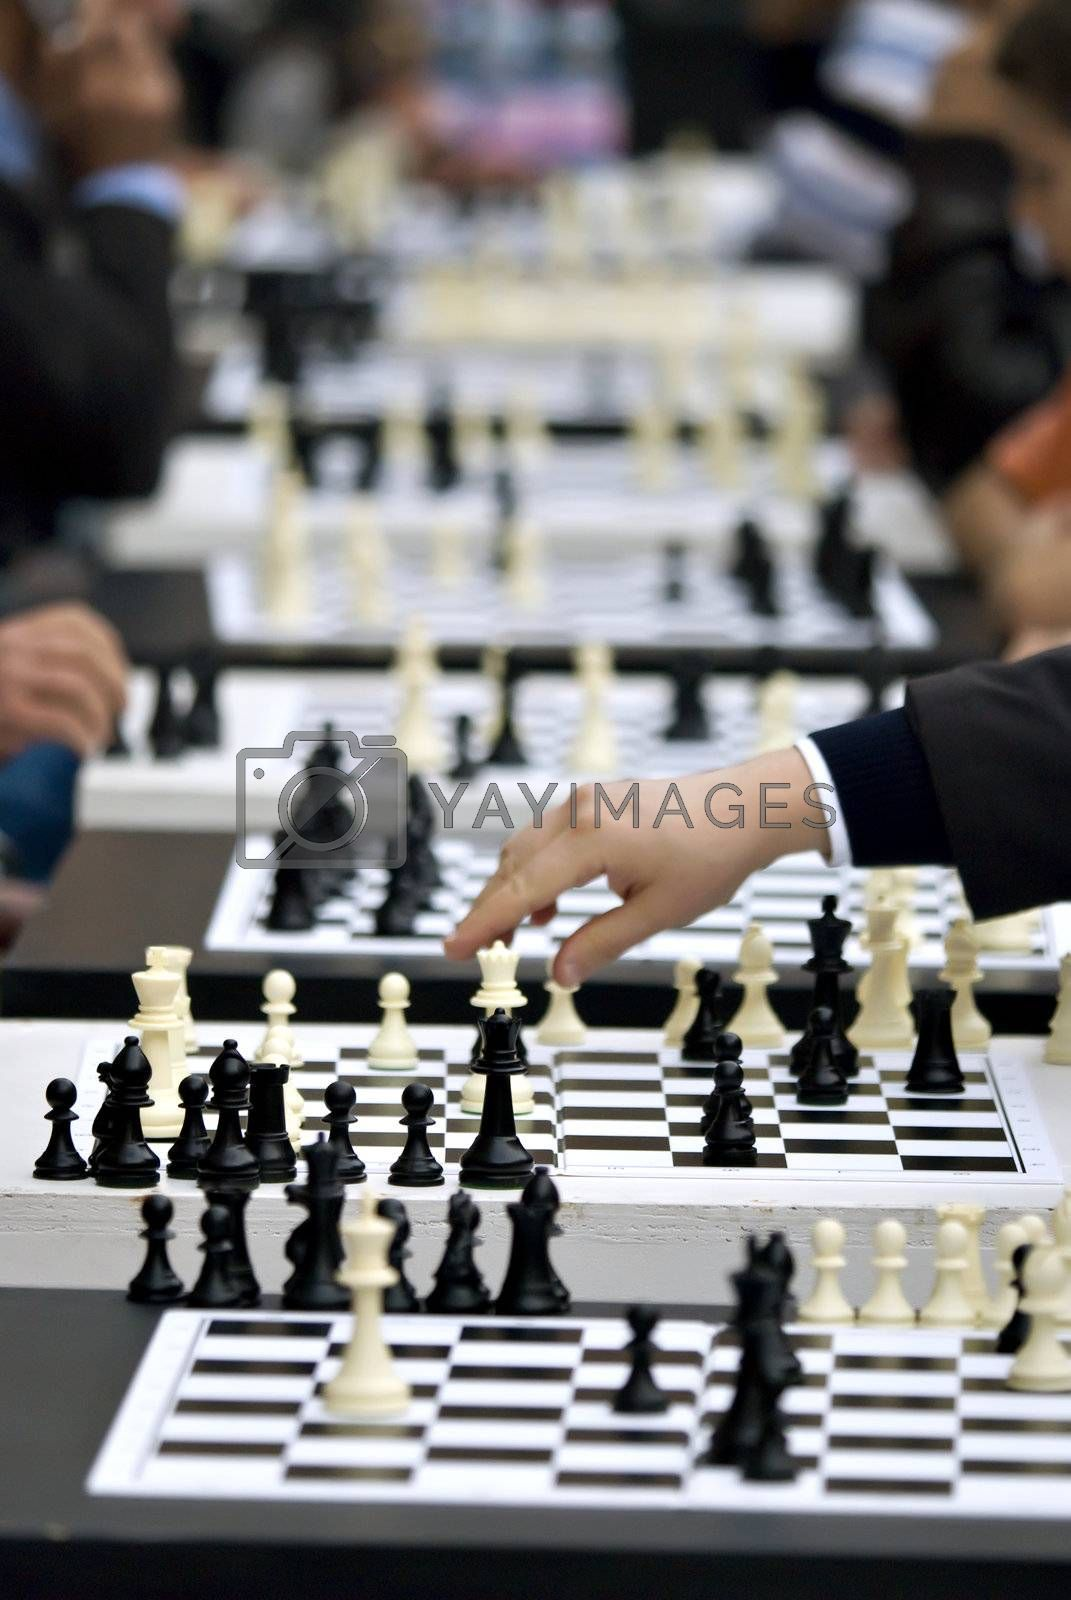 Royalty free image of Public Chess tournament by AlessandroZocc